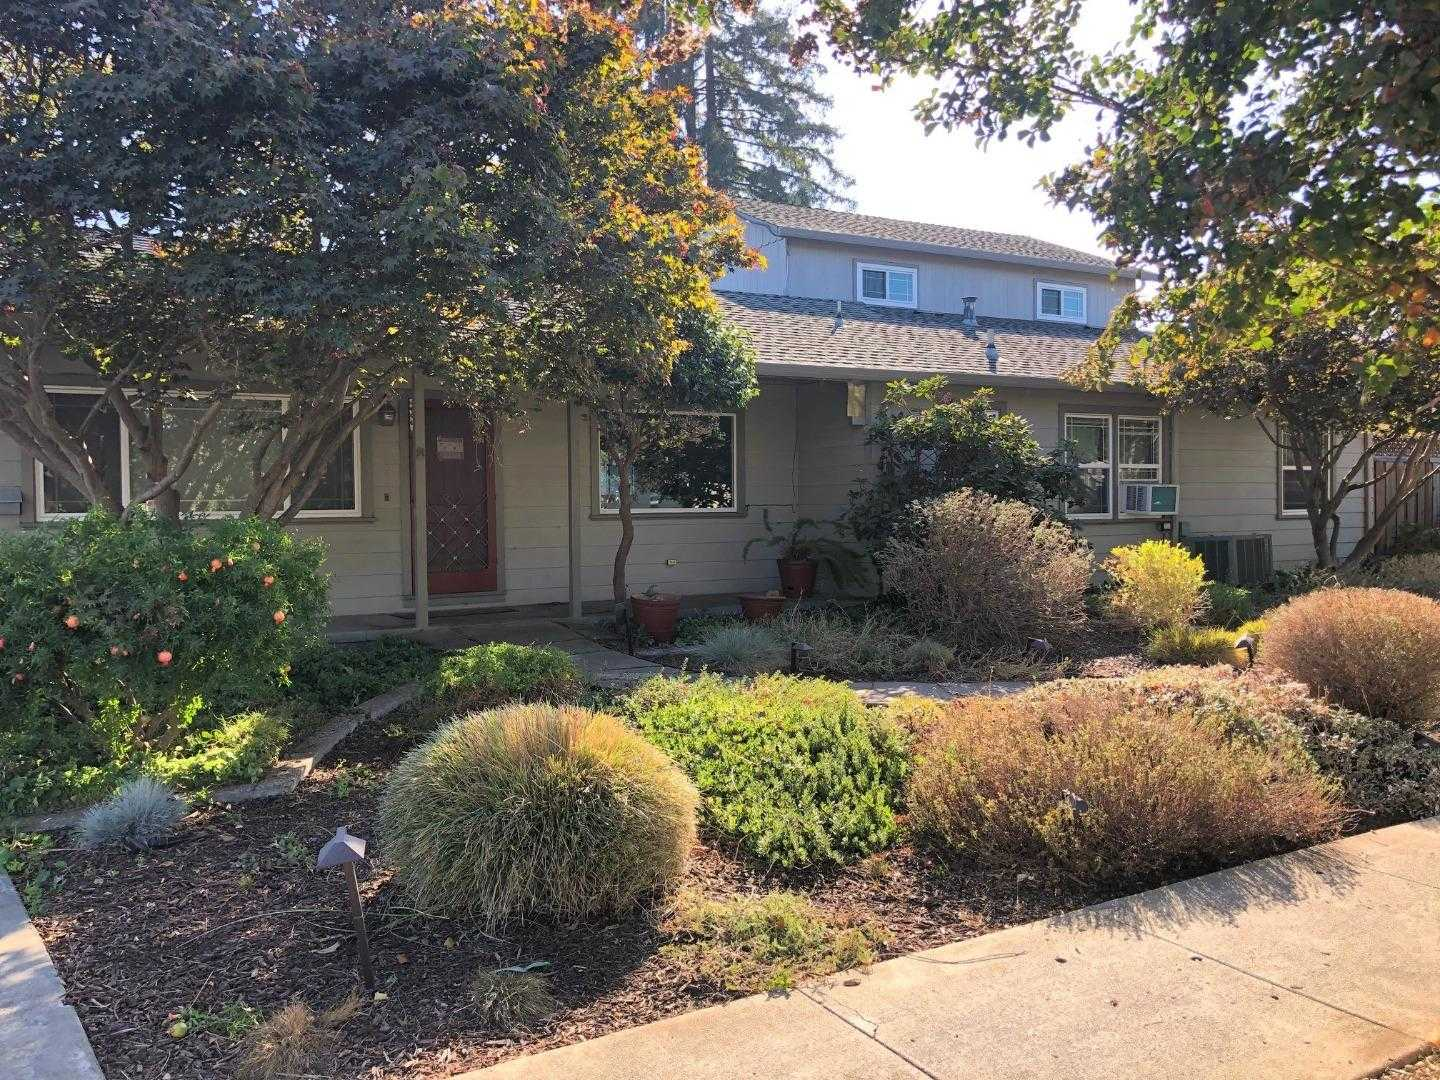 $1,449,998 - 4Br/3Ba -  for Sale in San Jose